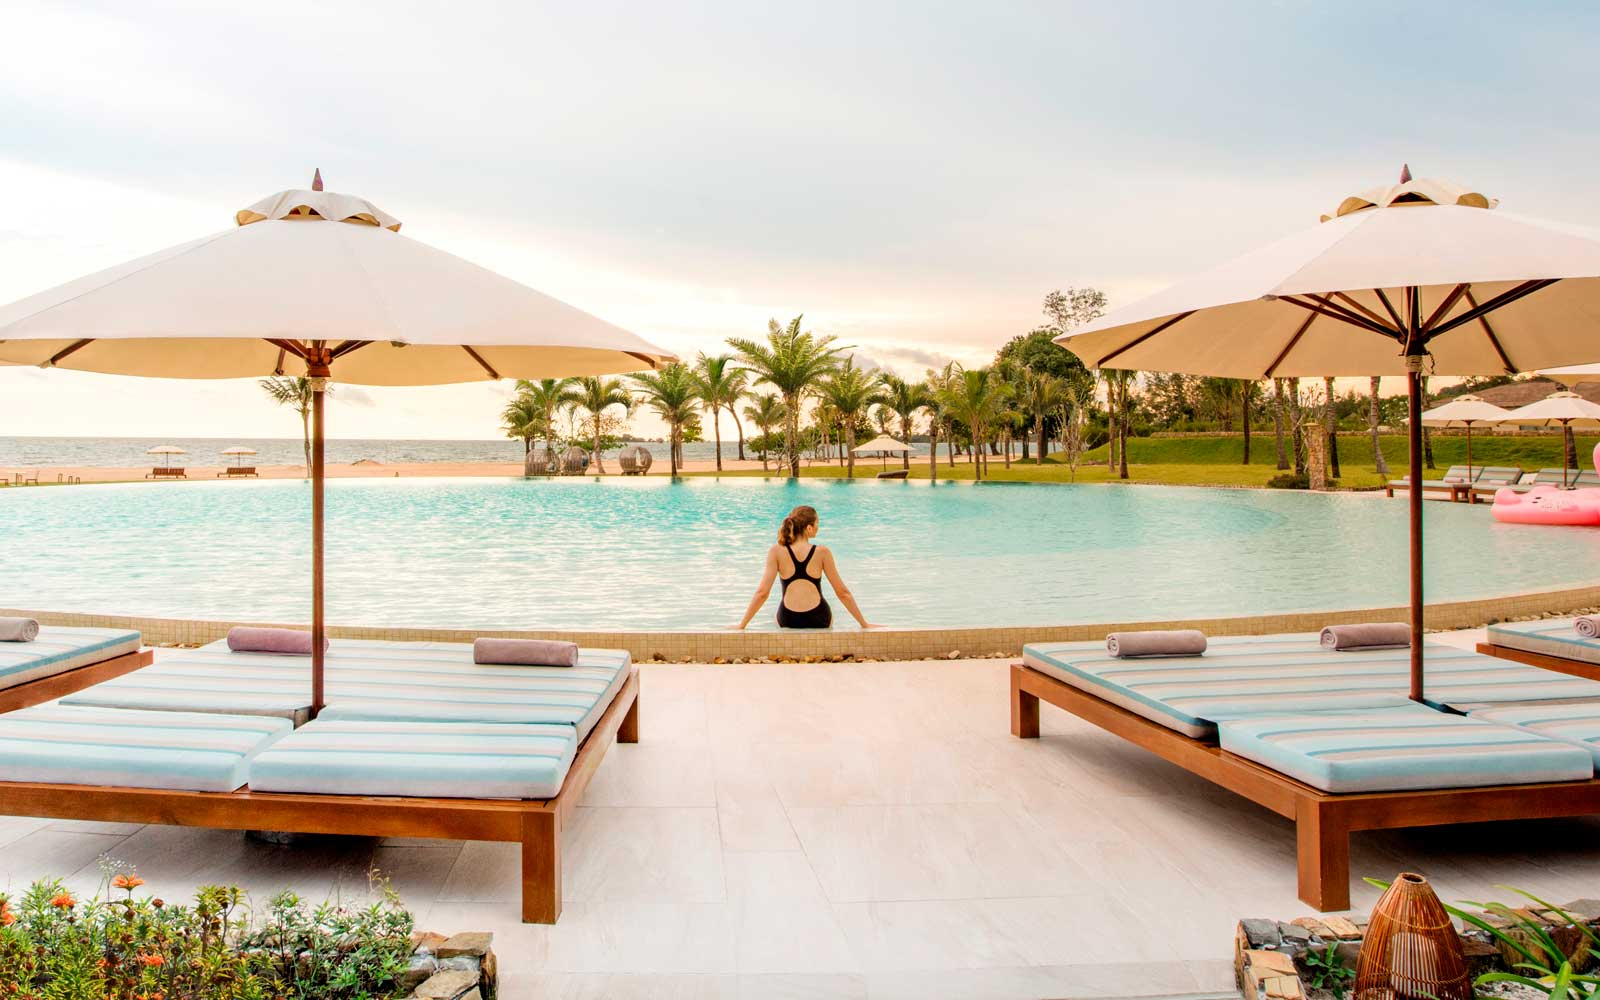 Enjoy 30% off Stays at a Luxurious Destination Spa in Vietnam